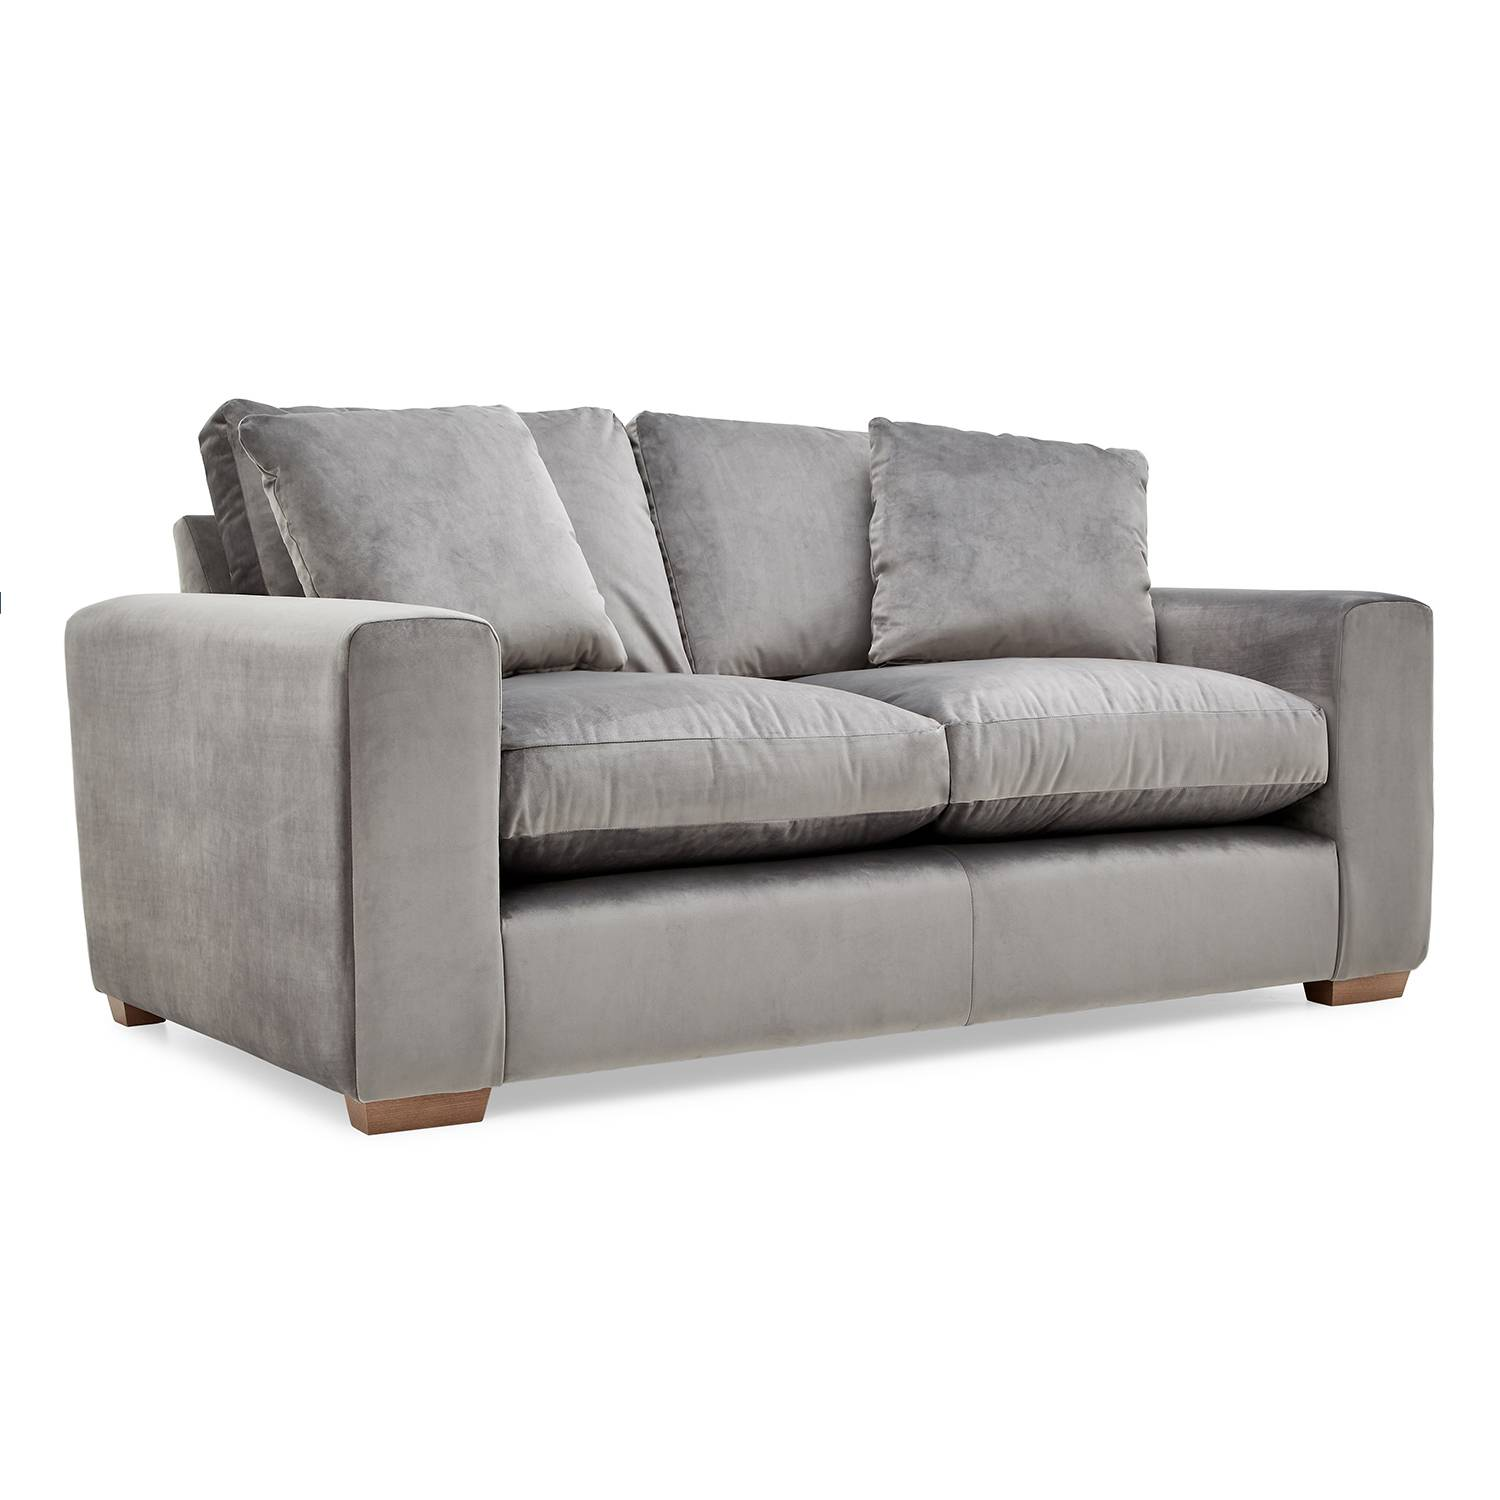 jamestown 2 piece sofa and loveseat group in gray upholstery fabric suppliers porto velvet seater grey dunelm collection best